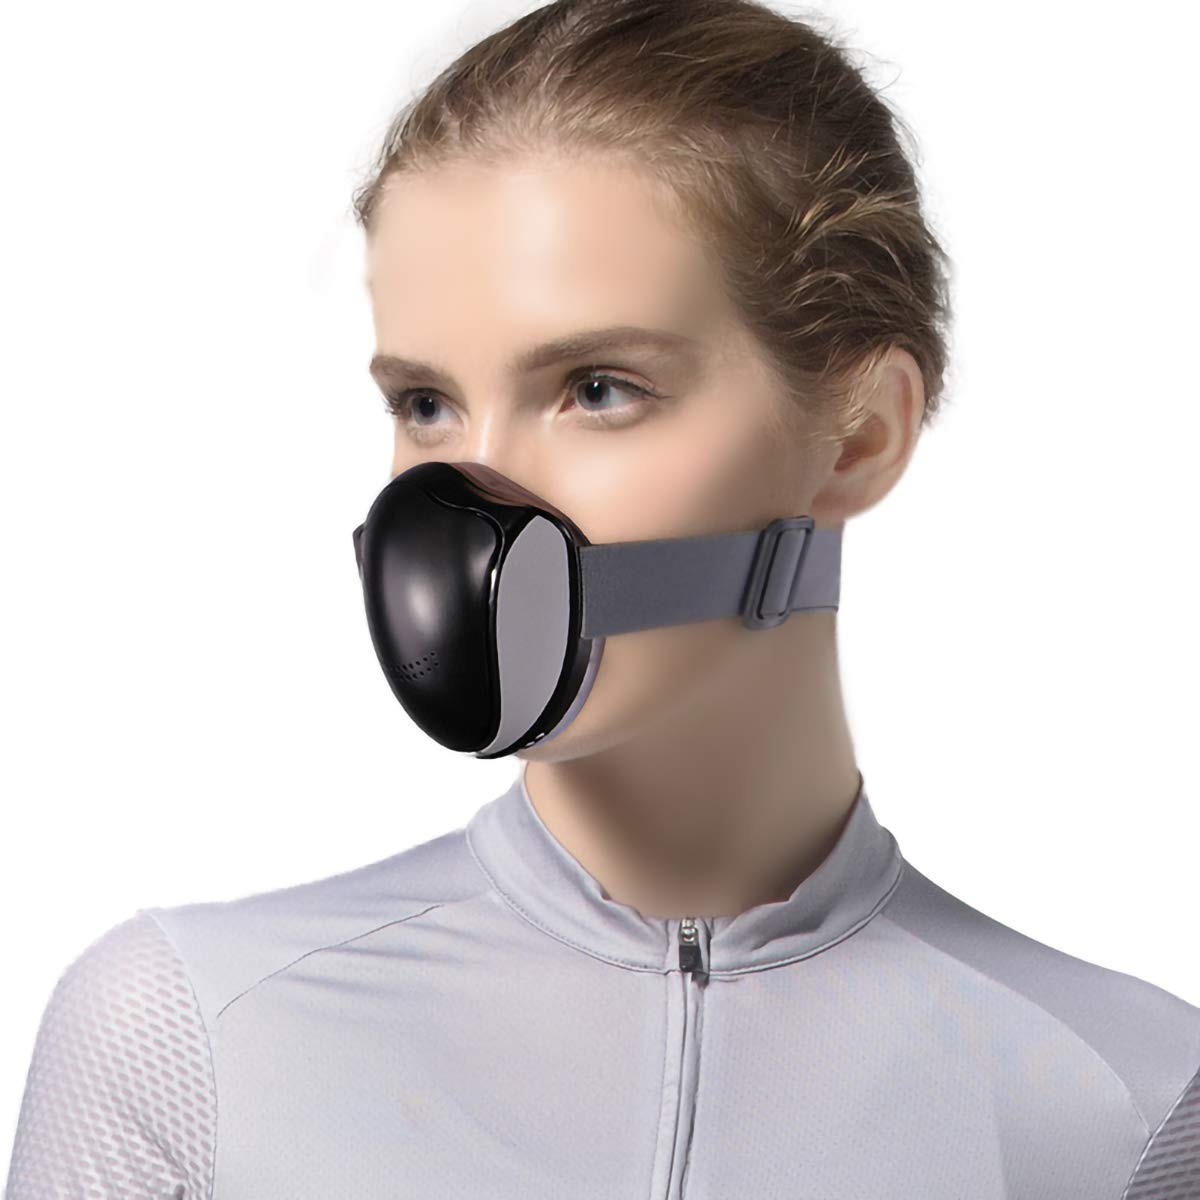 Buy Smart Electric Masks Medical Grade Fresh Air Purifying Hollywood Star With The Same Paragraph Anti Haze Fashion Dust Proof Mask For Exhaust Gas Pollen Allergy Pm2 5 Running Cycling Online At Low Prices